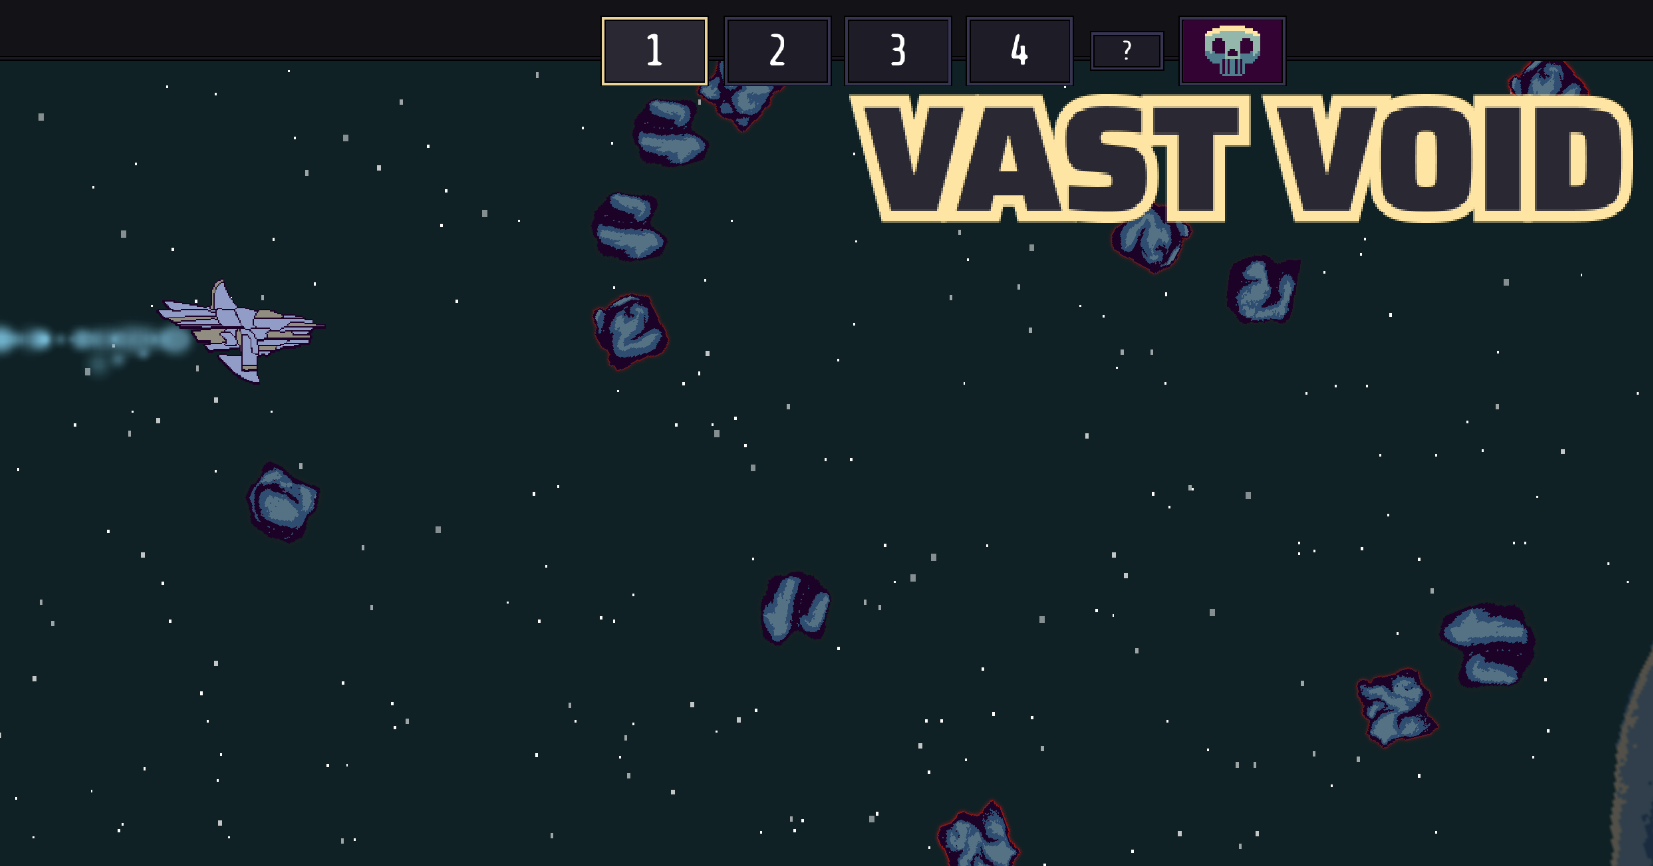 First look at Vast Void on iPad